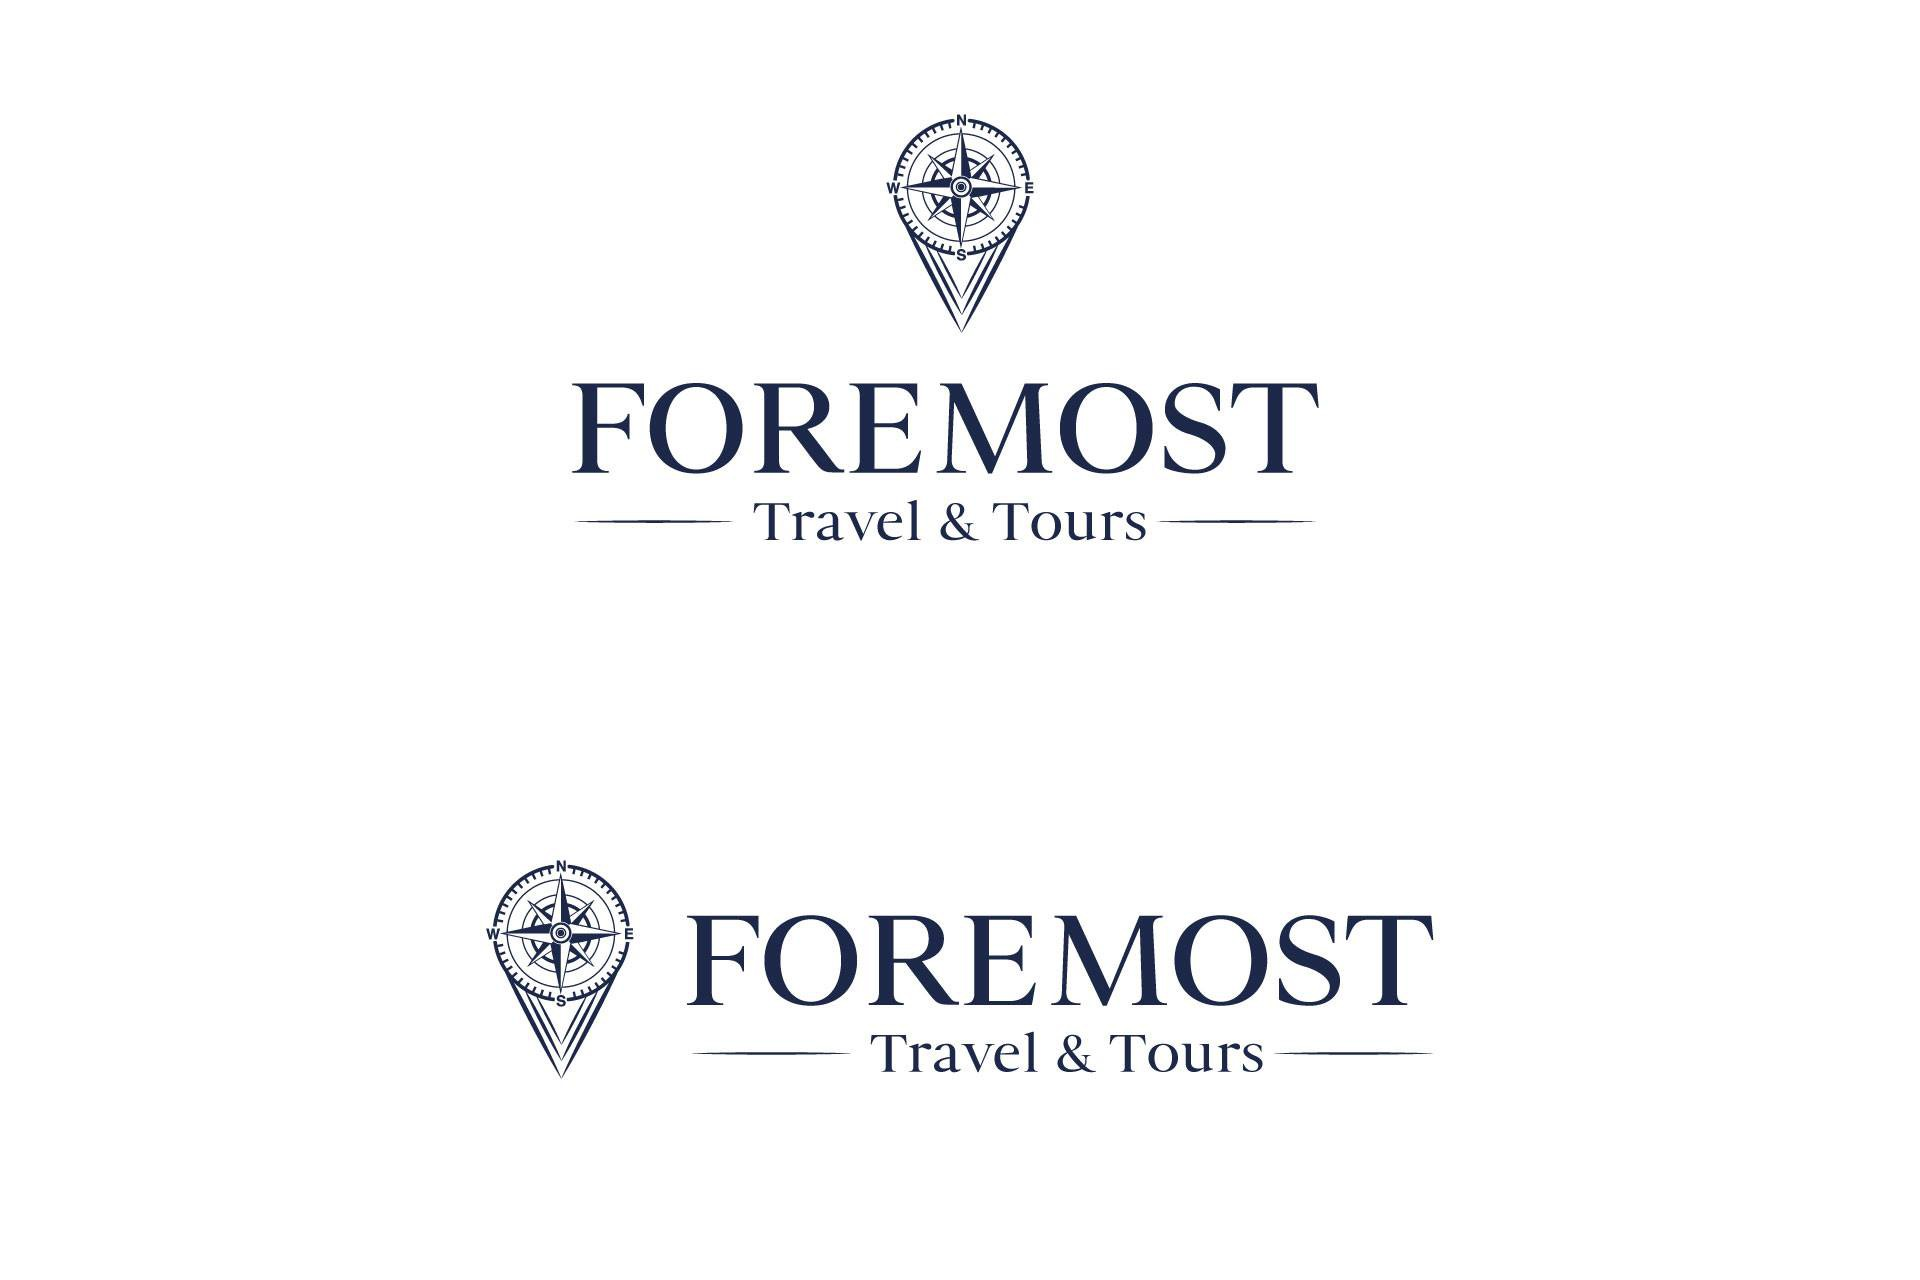 Logo Needed for Corporate Travel Company